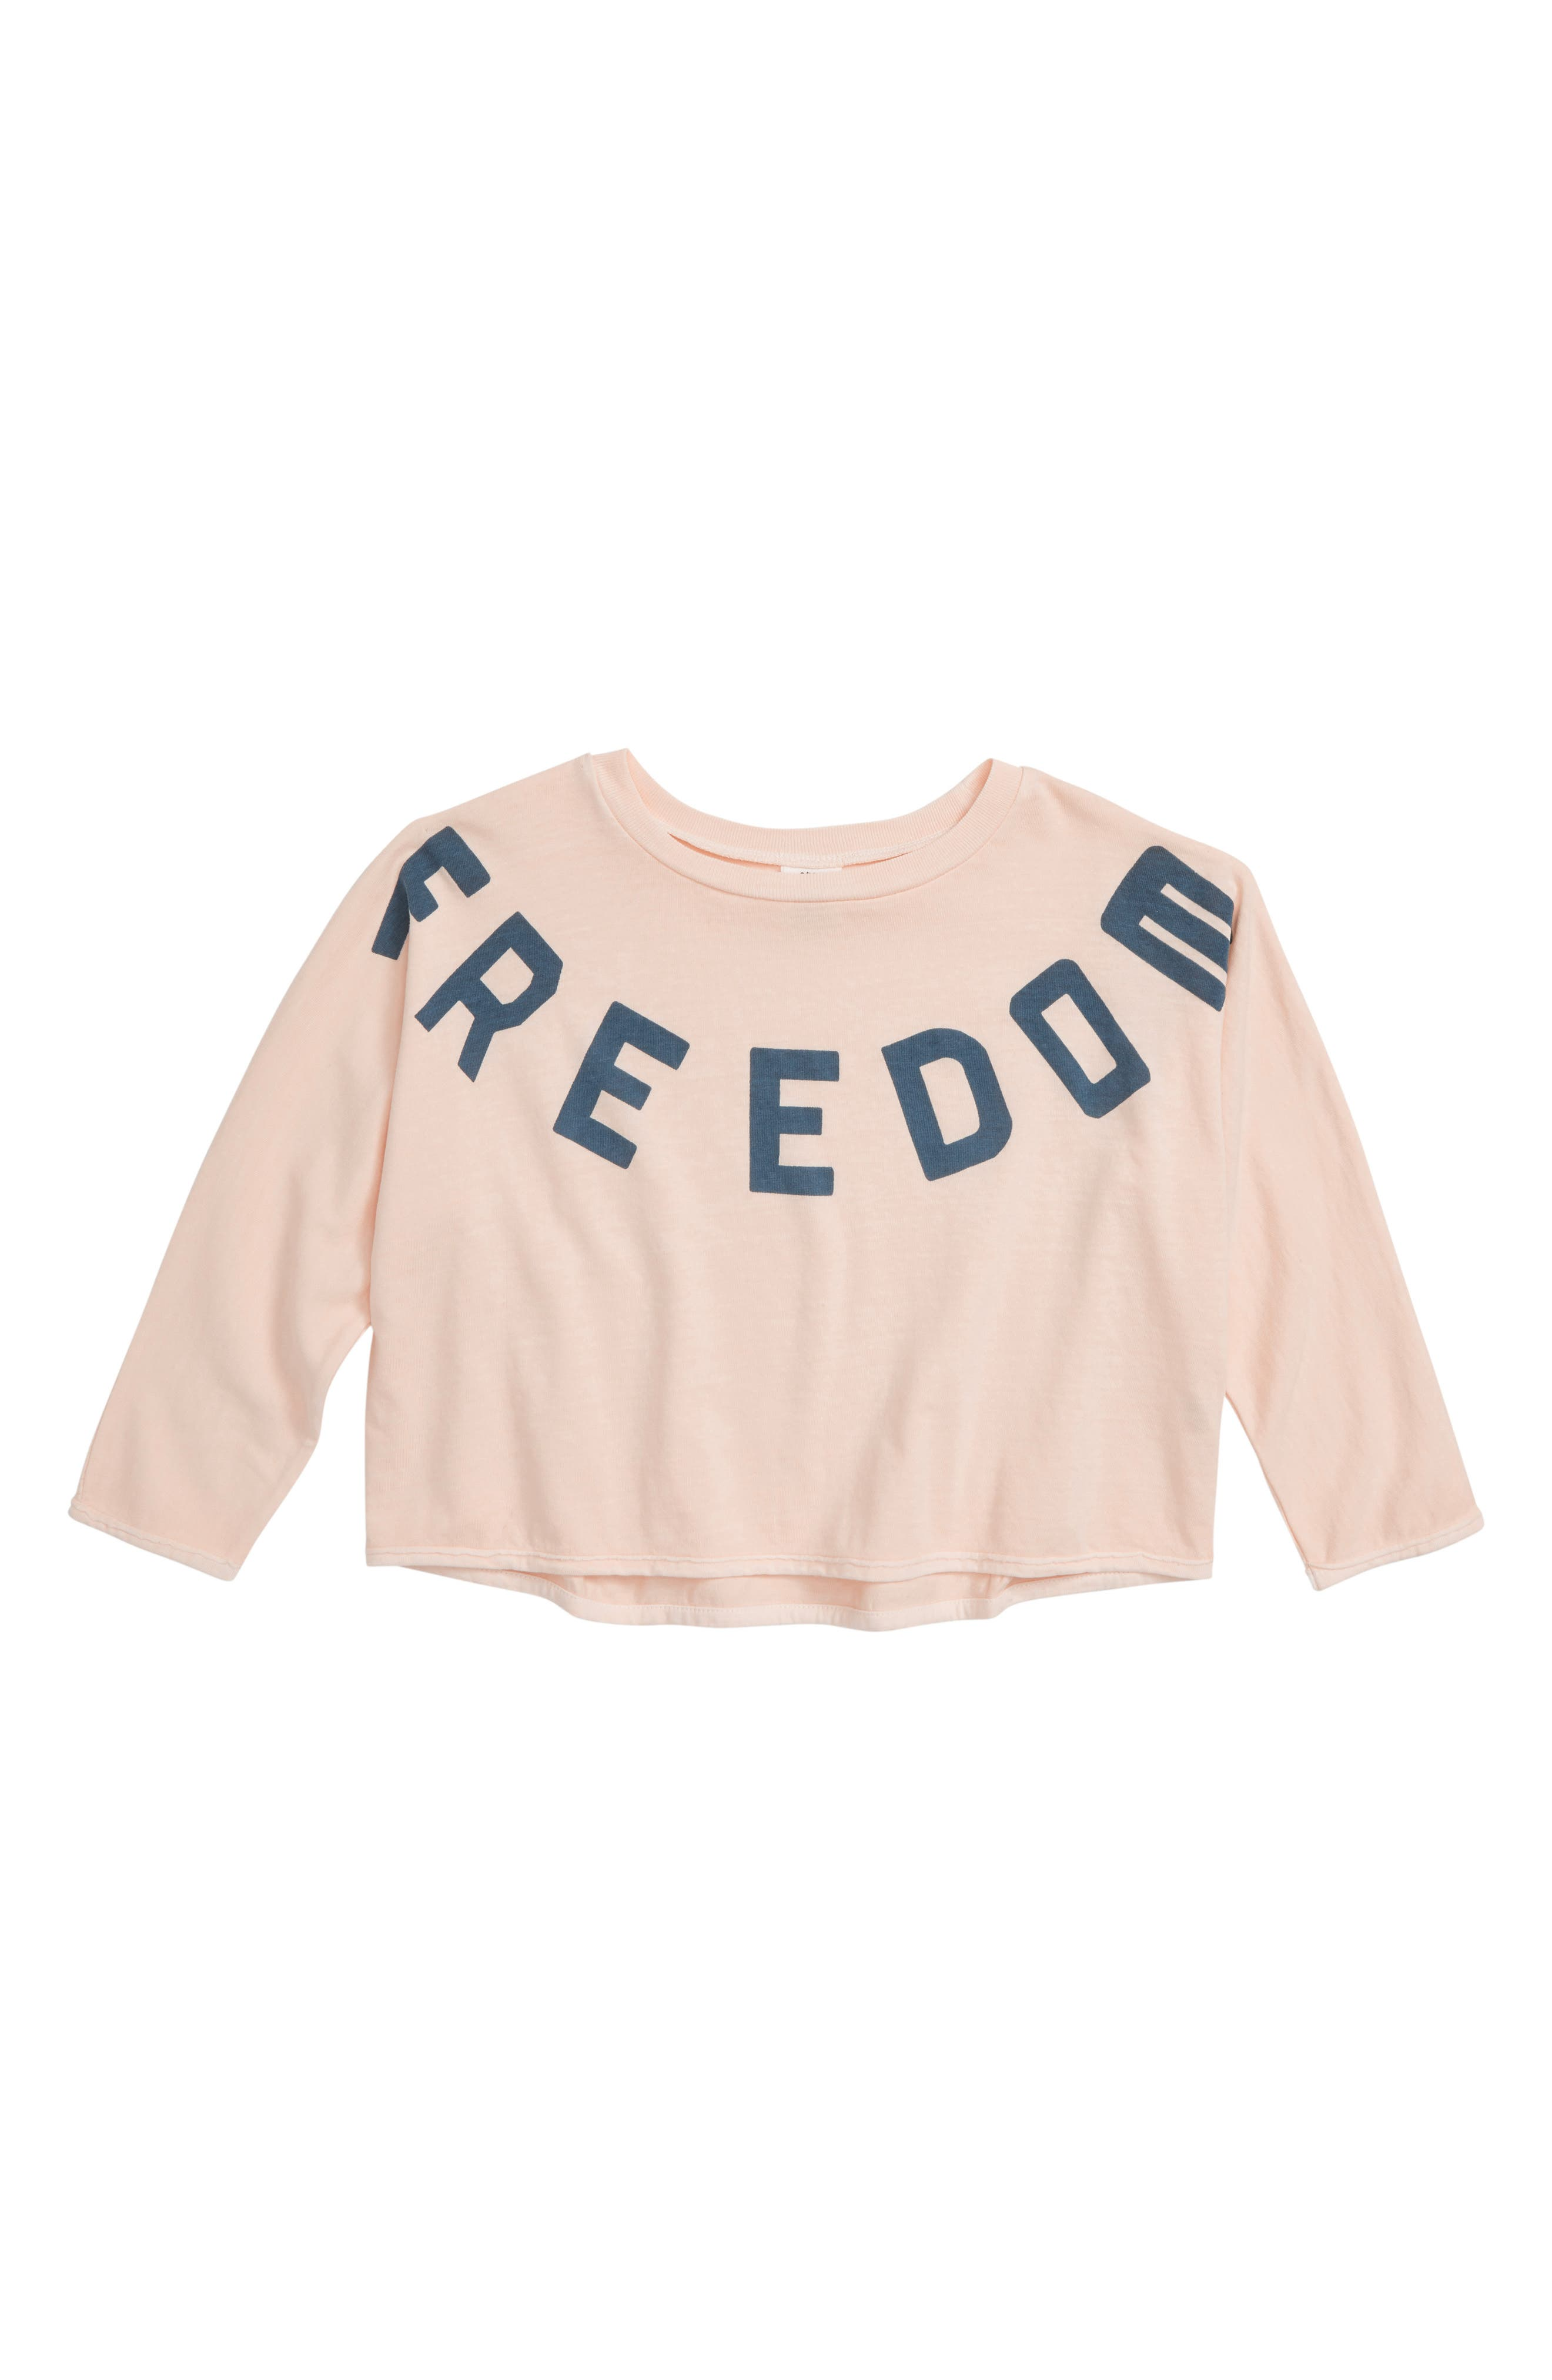 Freedom Tee,                             Main thumbnail 1, color,                             680